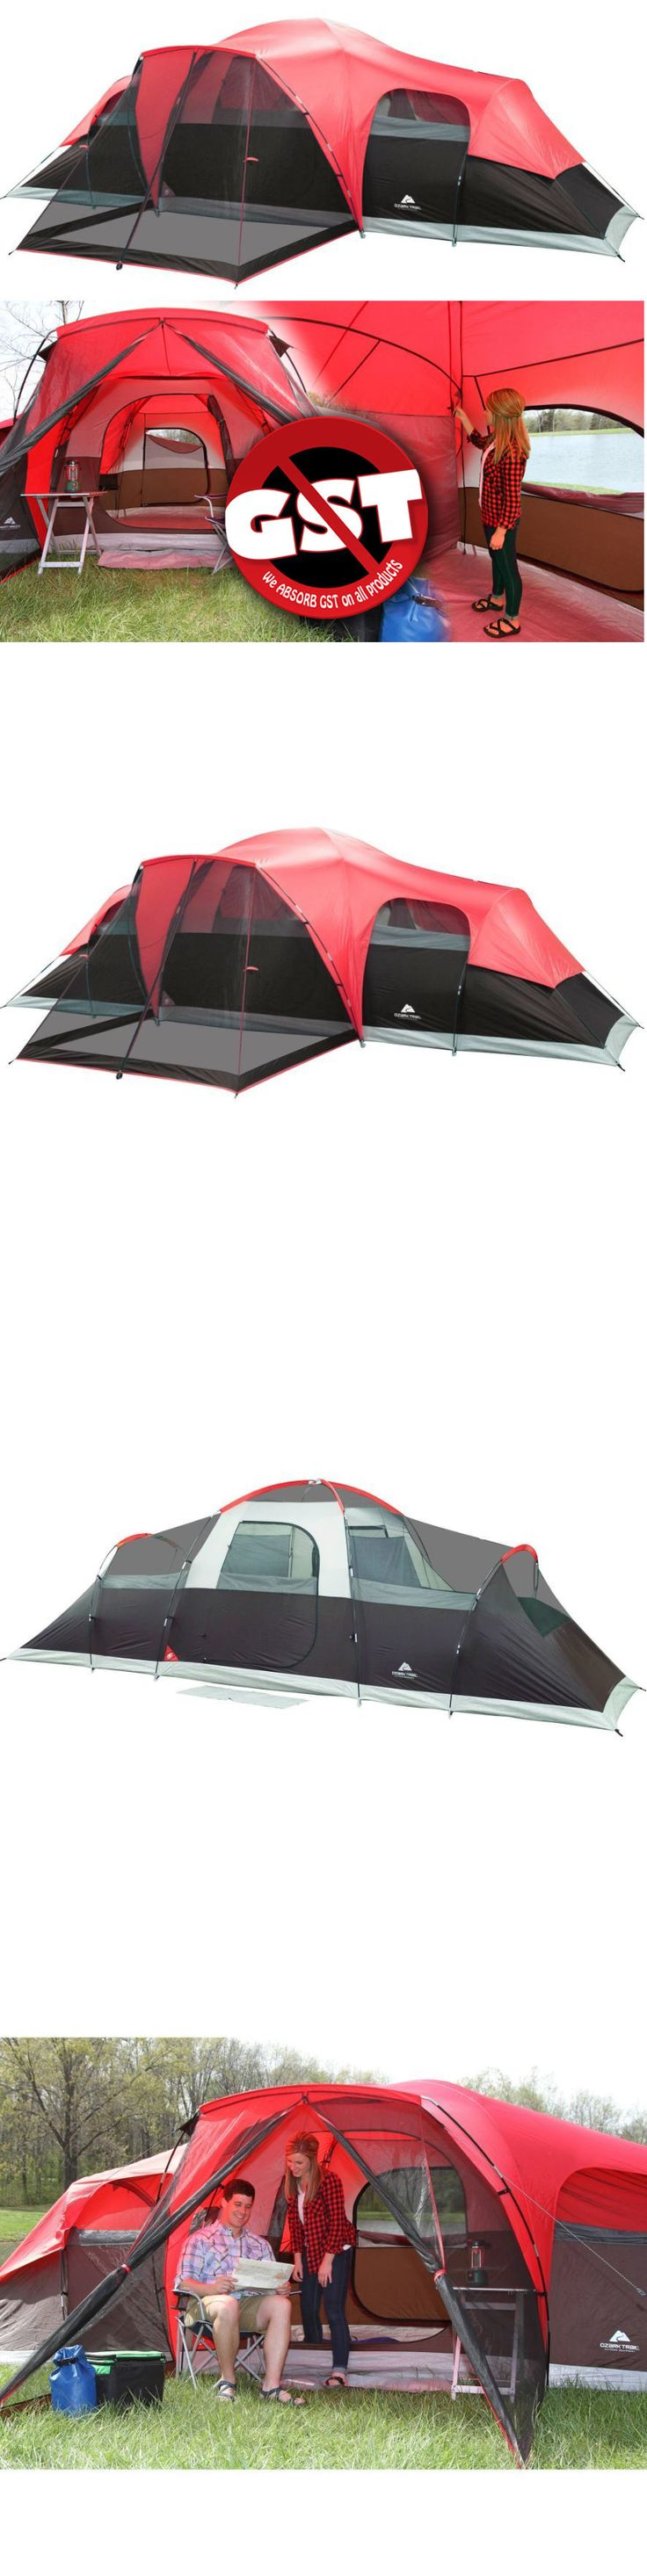 Tents 179010: Ozark Trail 3 Room 10 Person Waterproof Tent Large Family Camping Outdoor Cabin -> BUY IT NOW ONLY: $127.61 on eBay!